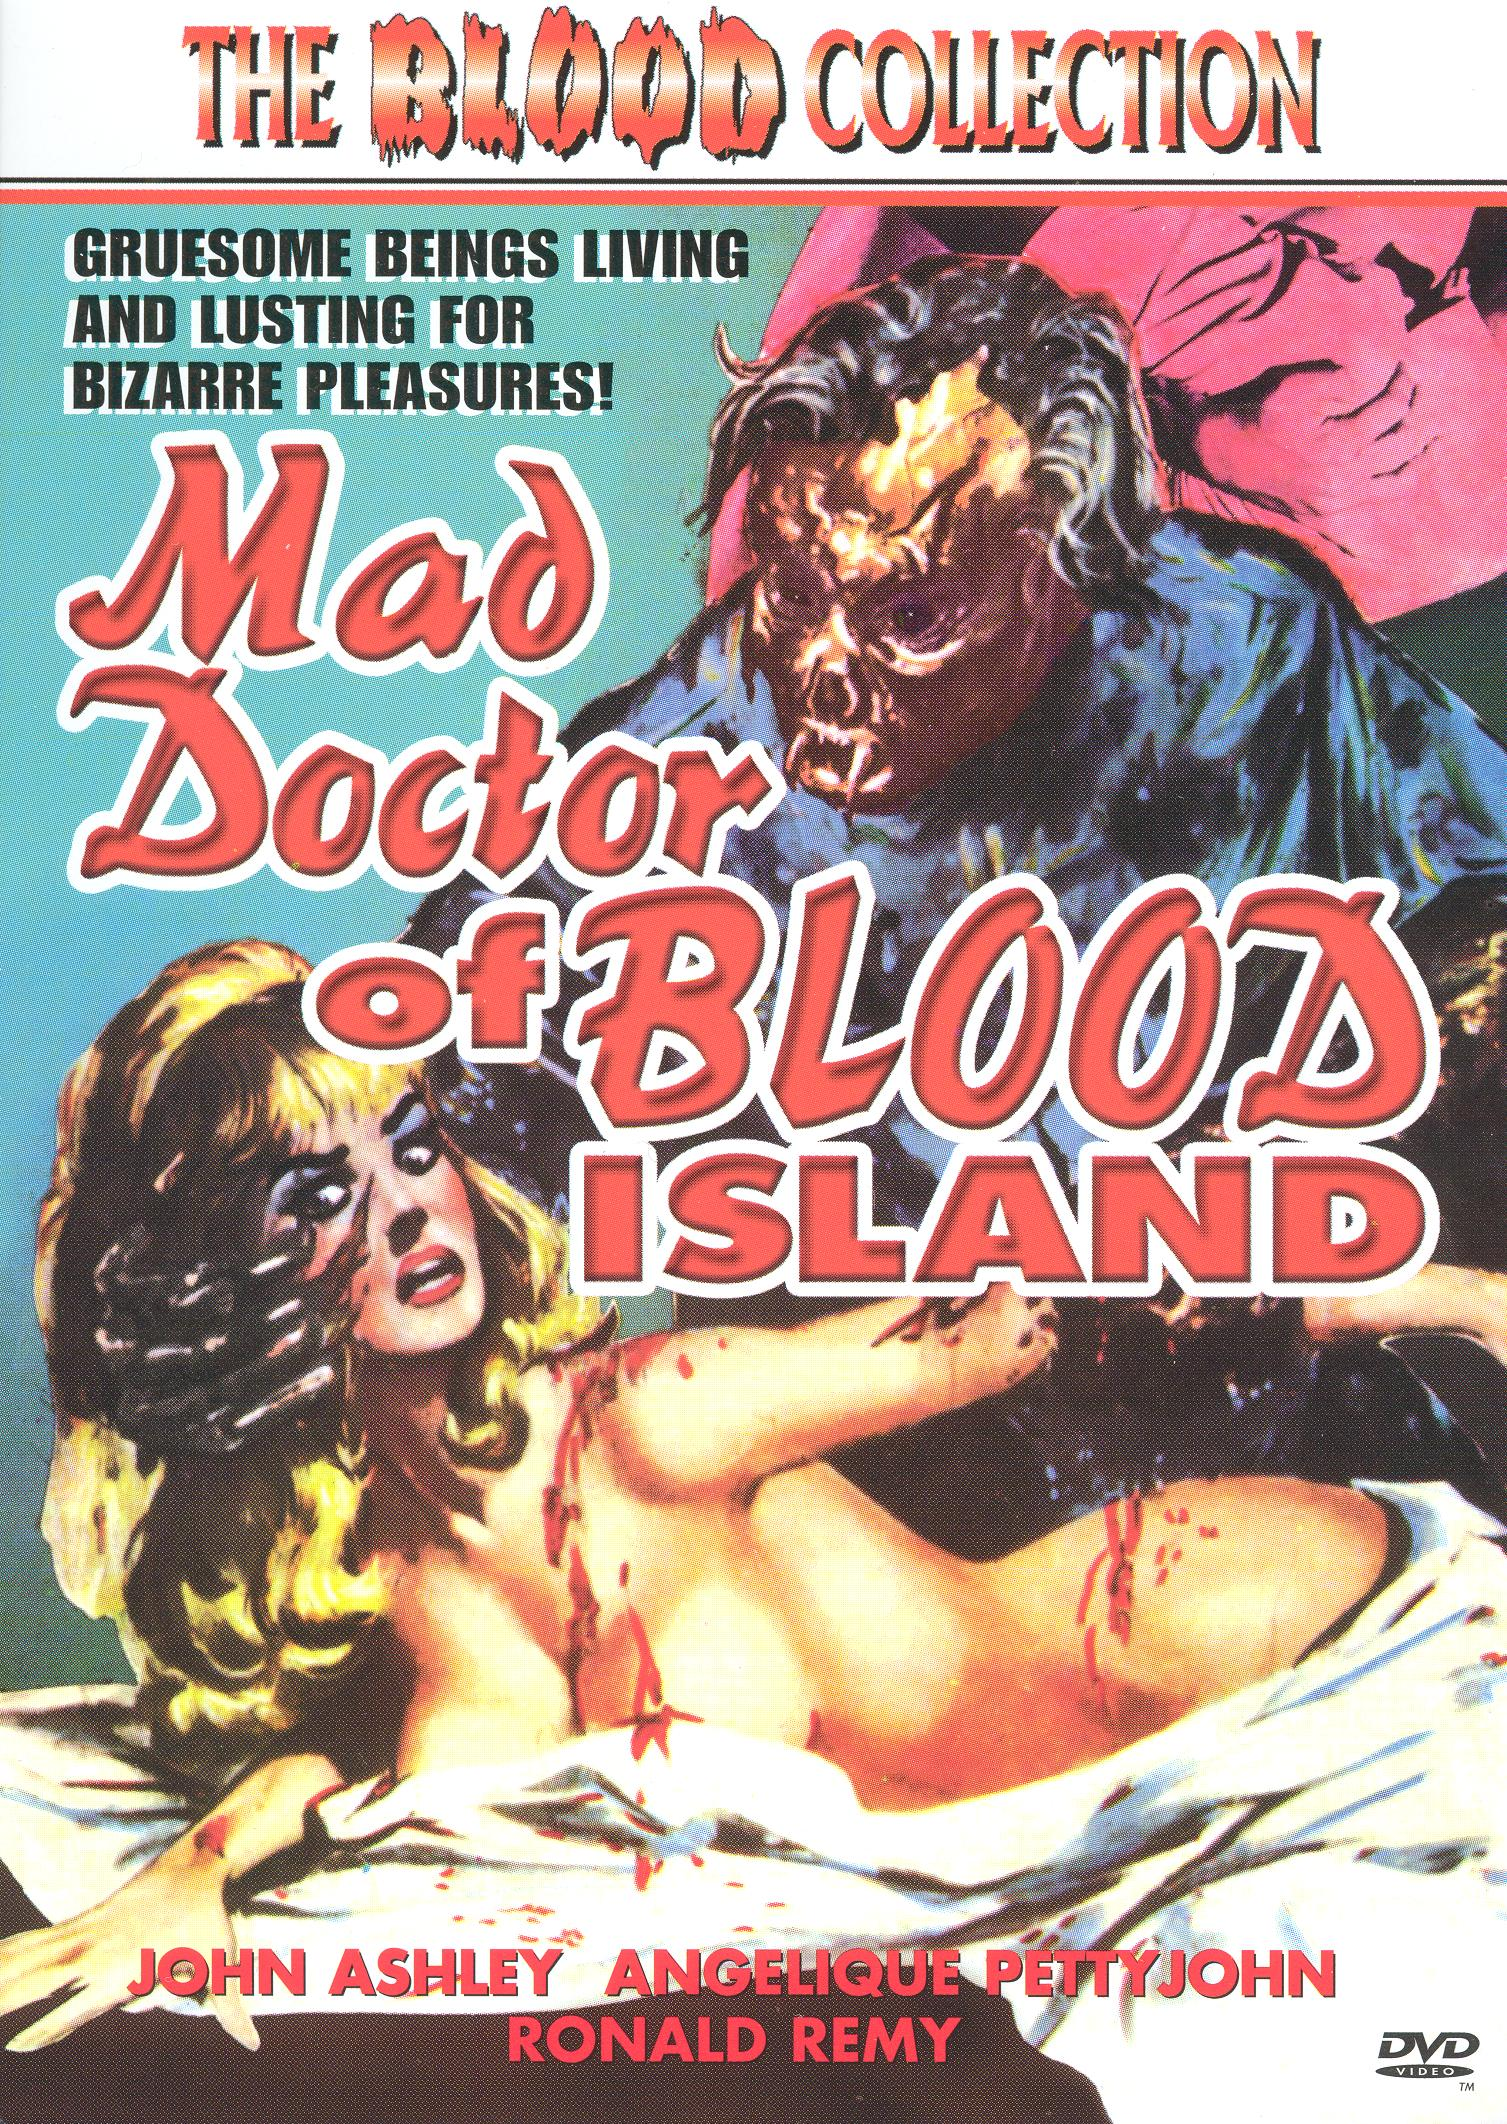 The Mad Doctor of Blood Island